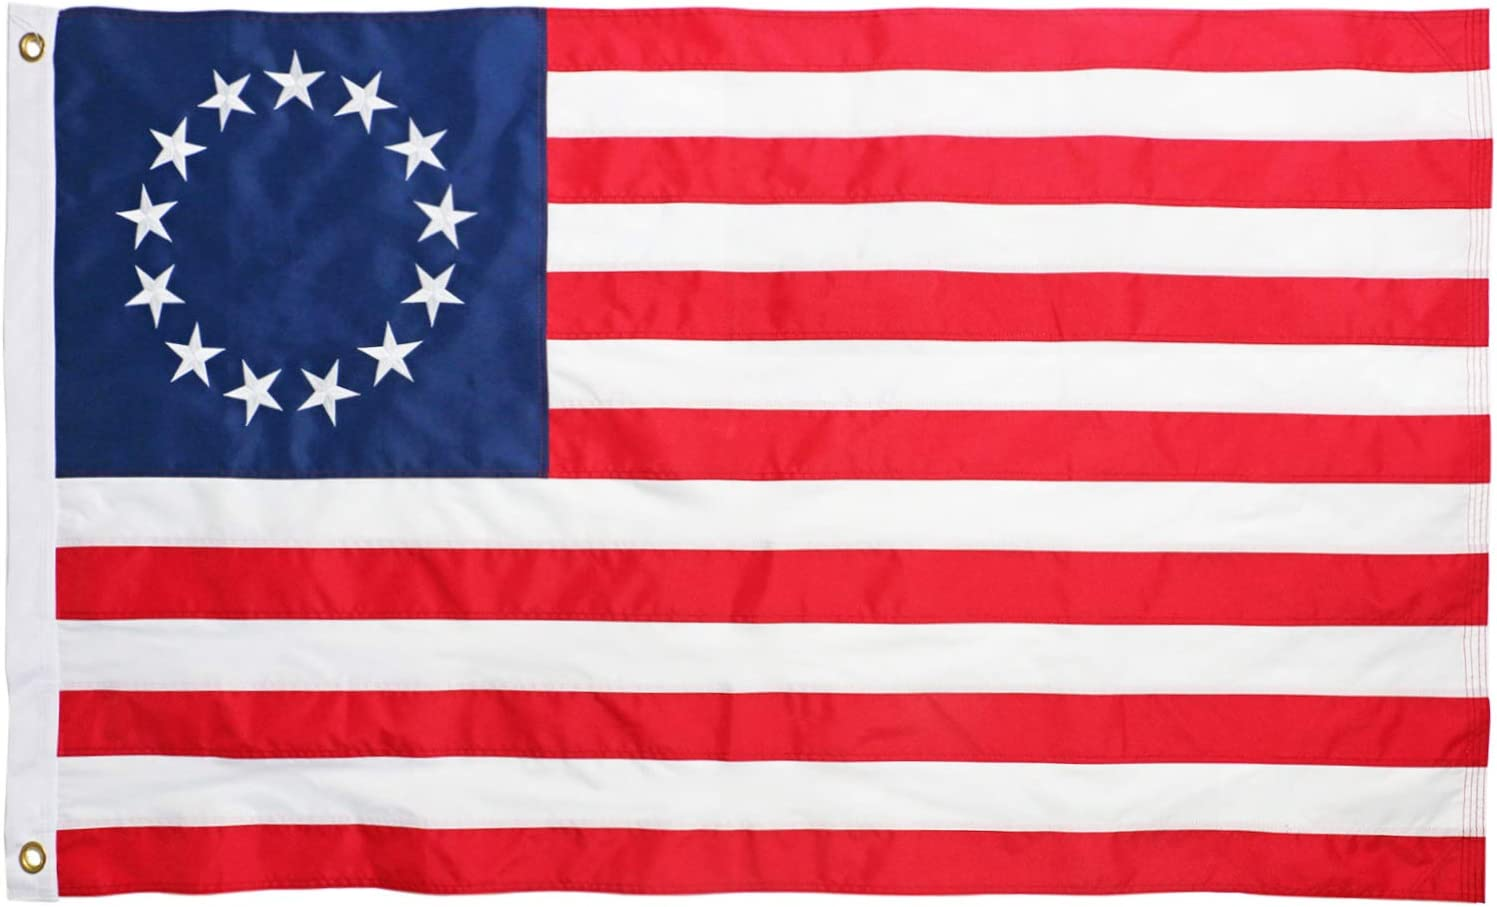 DLORY American Betsy Ross Flag 3x5 FT Outdoor Durable Heavy Duty 13 Star Fade Resistant Embroidered Stars and Sewn Stripes